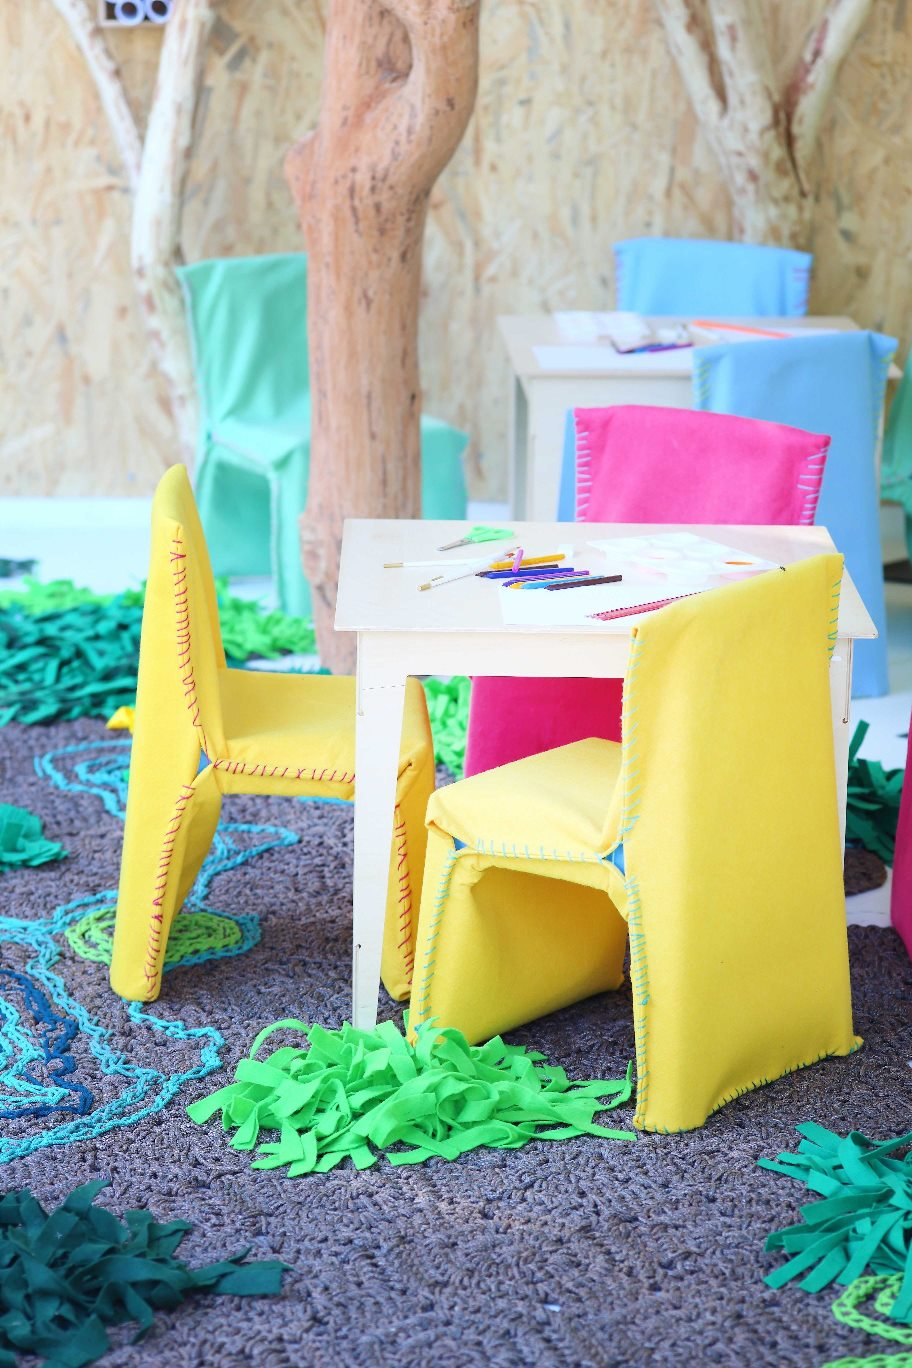 Simple PLASTIC chairs, that are low-cost and readily available, are slip covered in FELT with oversize stitching to emphasis softness and cocoon and resulting in fun comfortable seating, with covers that can be removed and washed. The tables by Pedersen & Lennard are made of birch PLYWOOD.